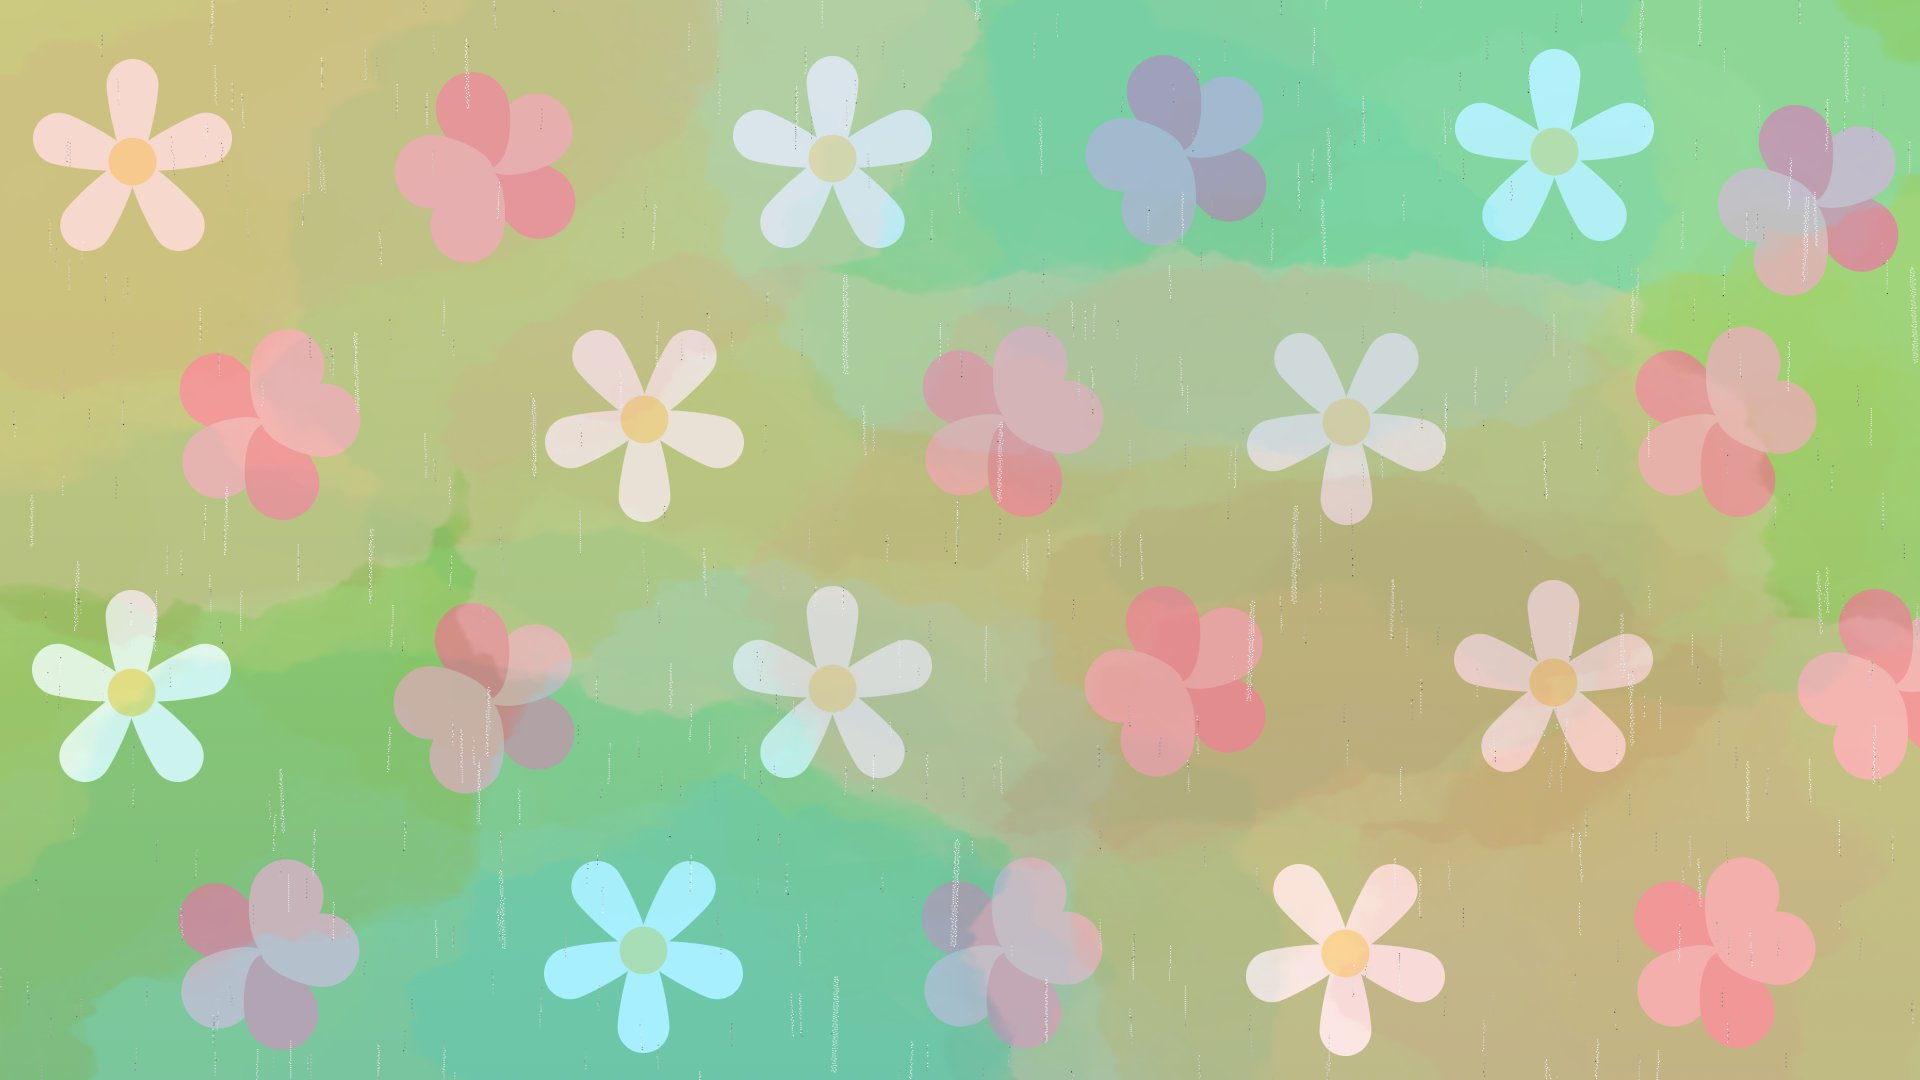 Wallpaperwednesday April Showers Bring May Flowers Buncee